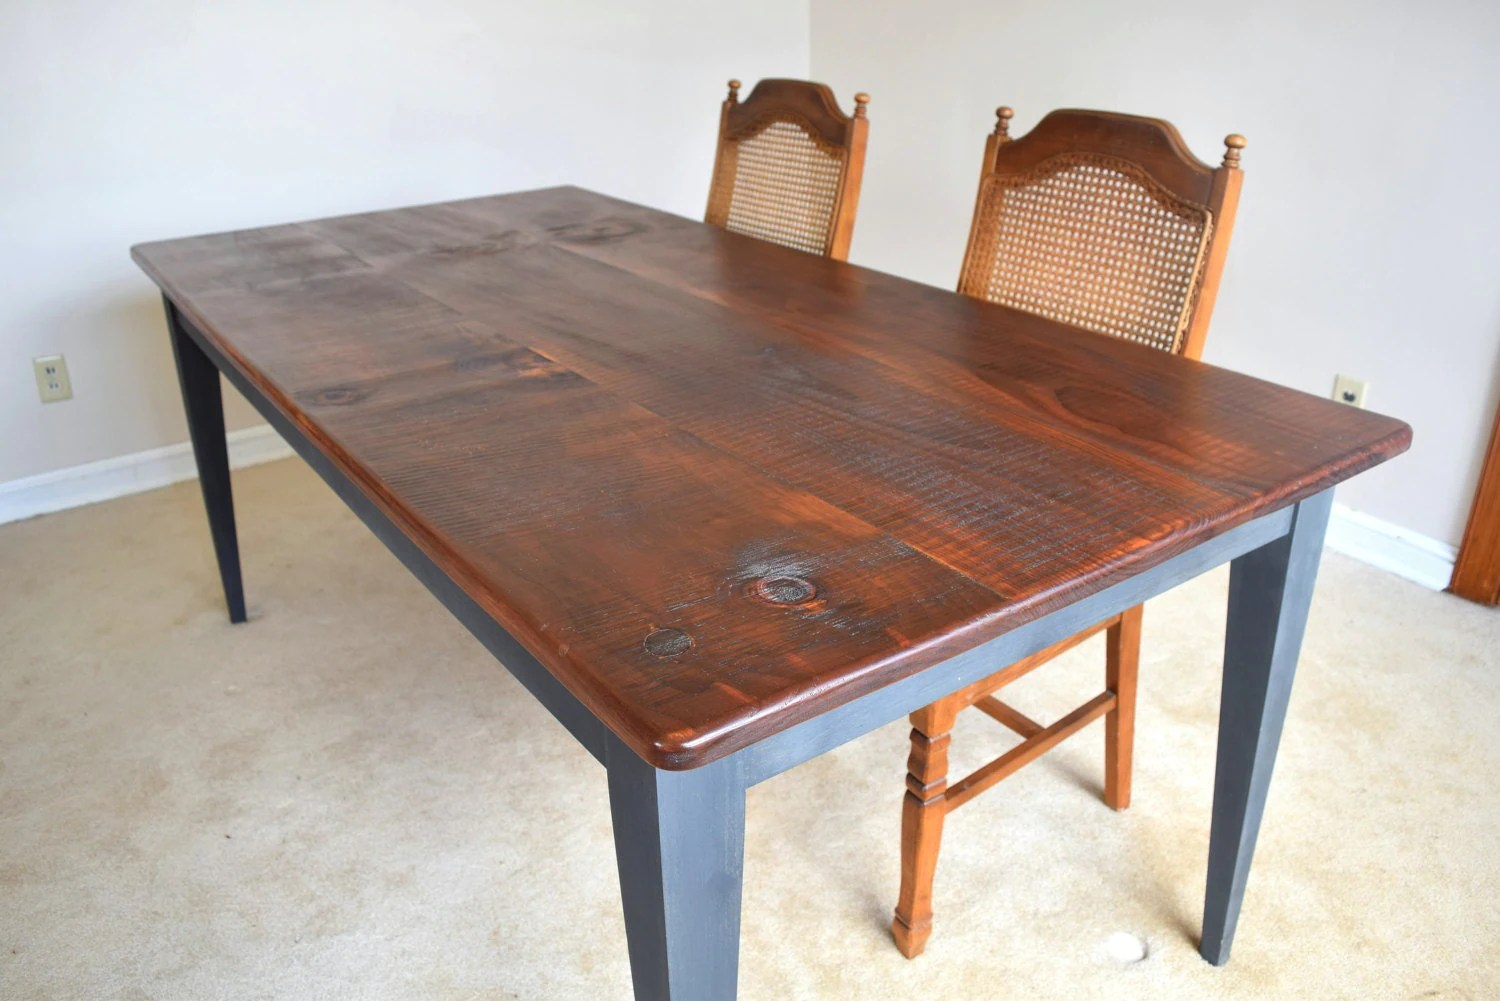 dining table rustic farm table farm style kitchen table Farm House Rustic Dining Table Farm Style Solid Pine Wood Kitchen Table